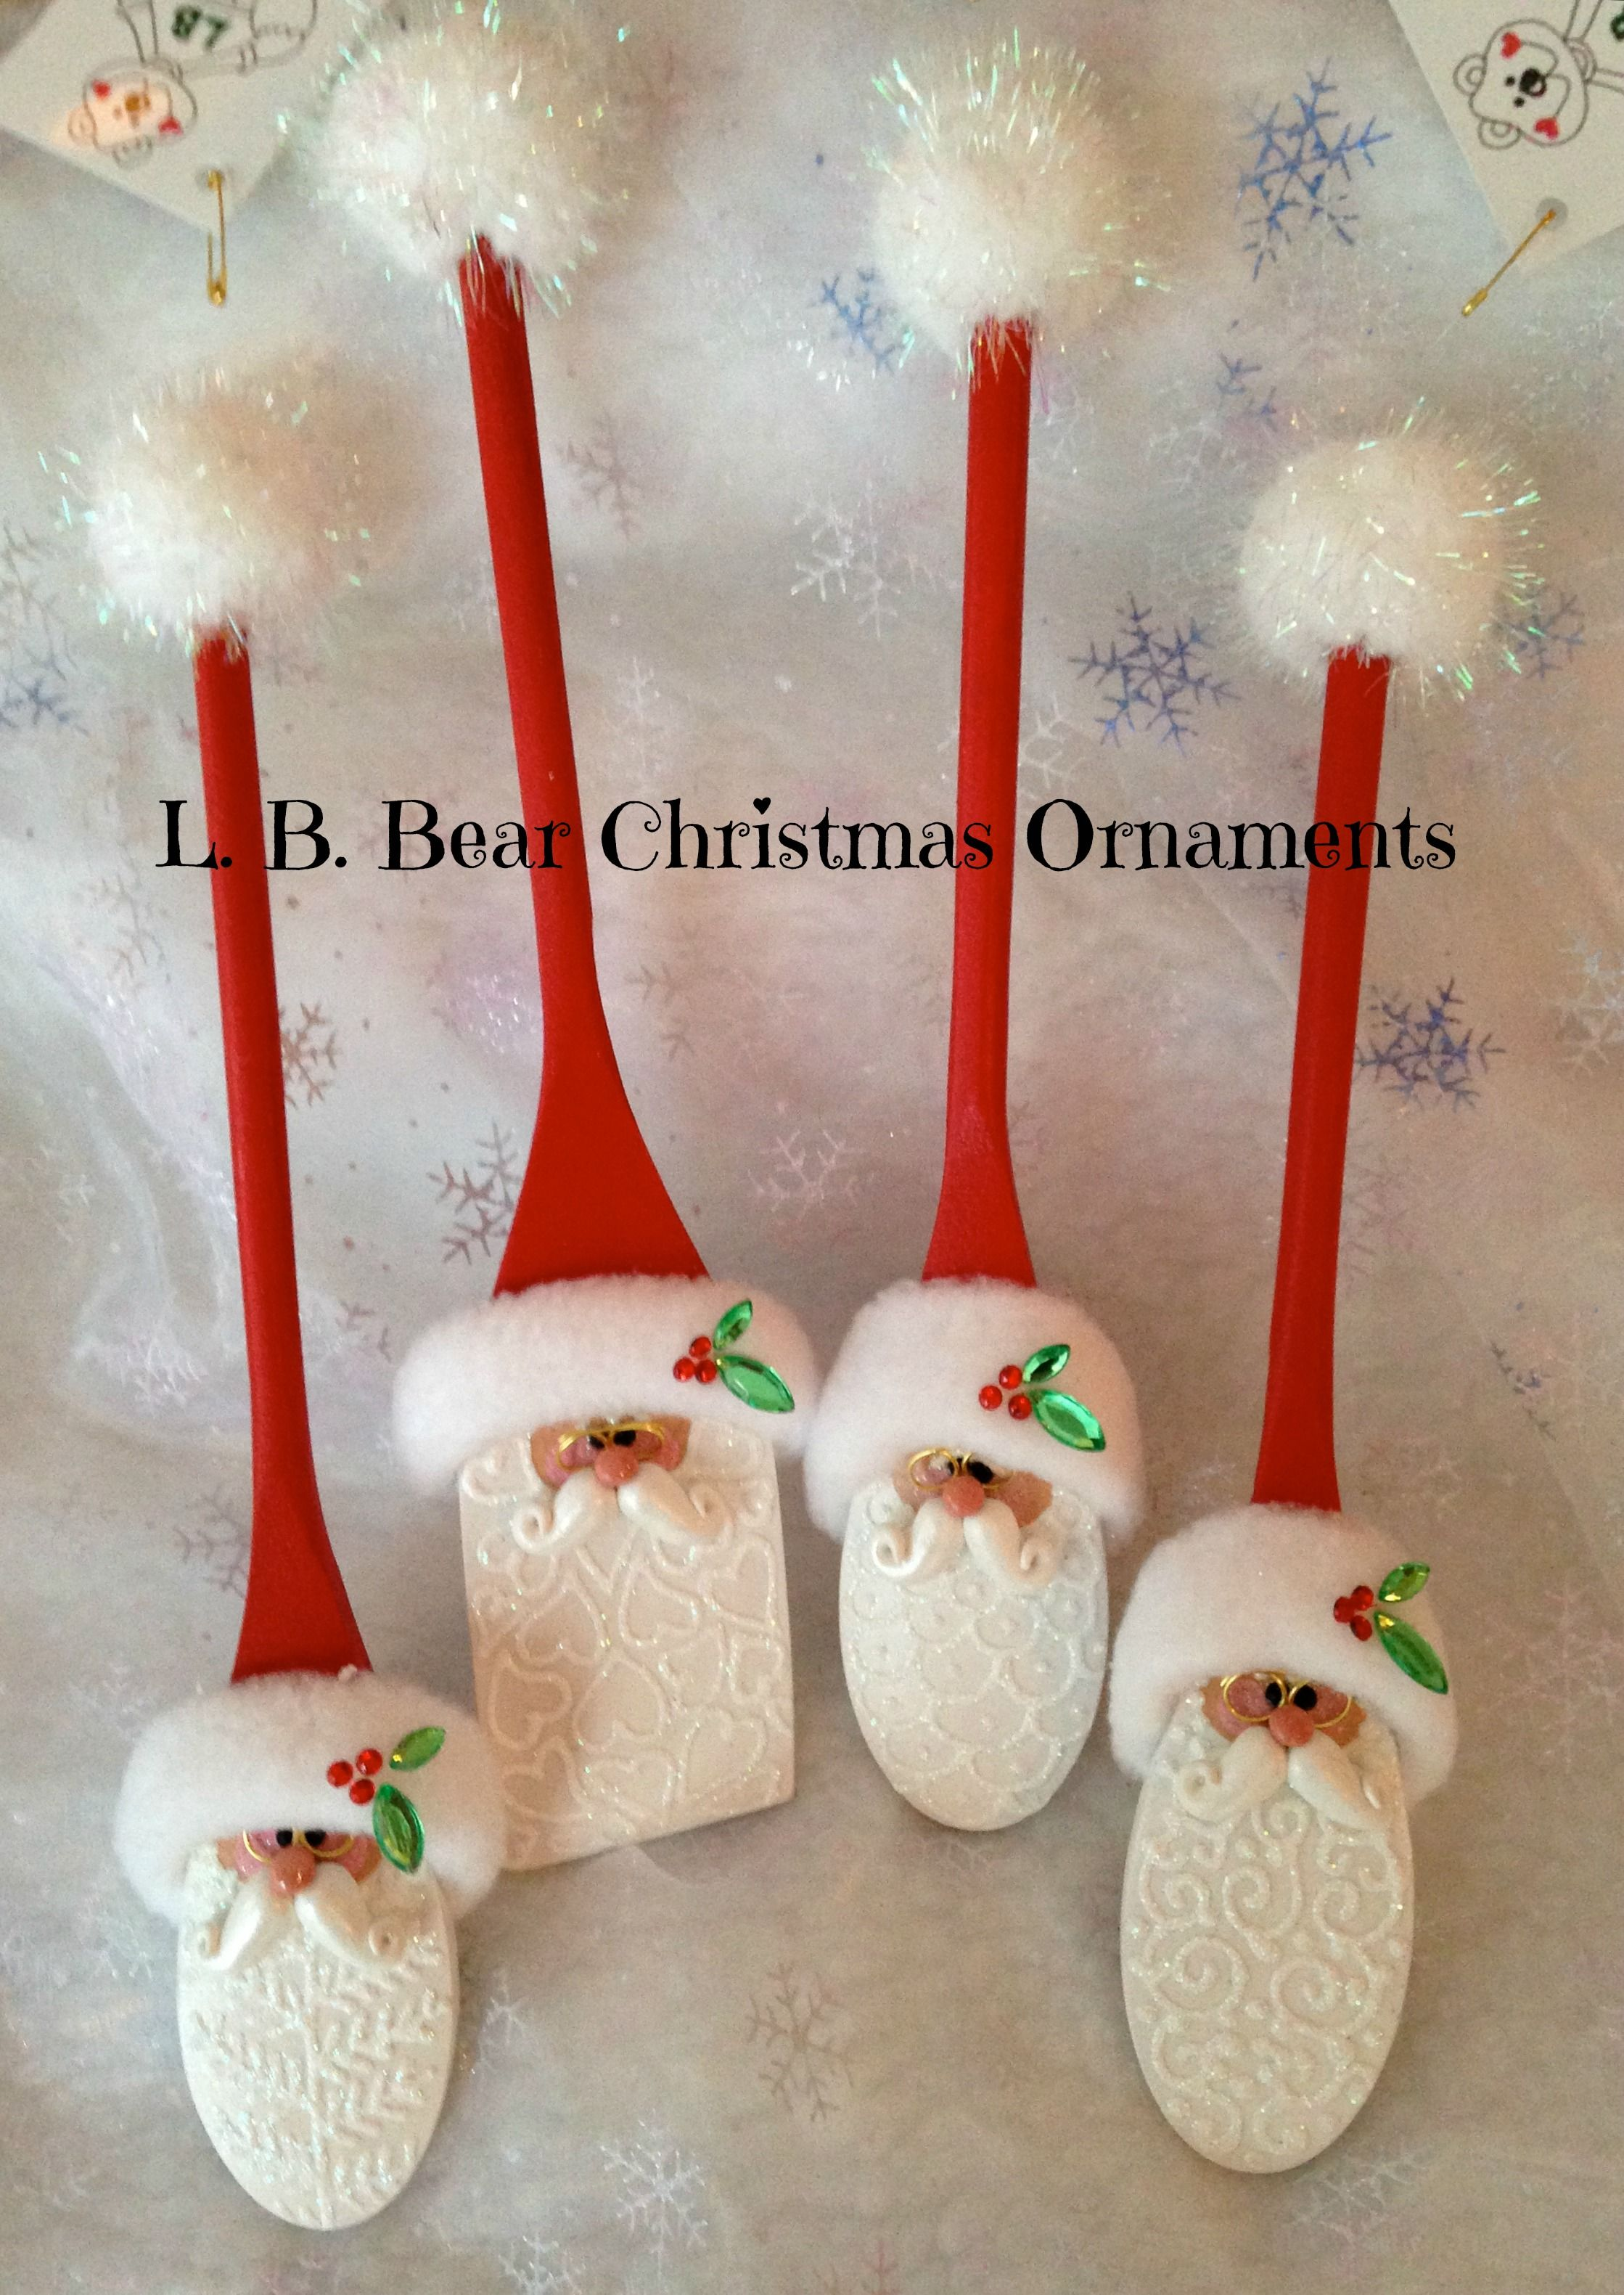 L B Bear Christmas Ornaments  4 Wooden Spoon Hand Painted And  Embellished Santa Ornaments  Each